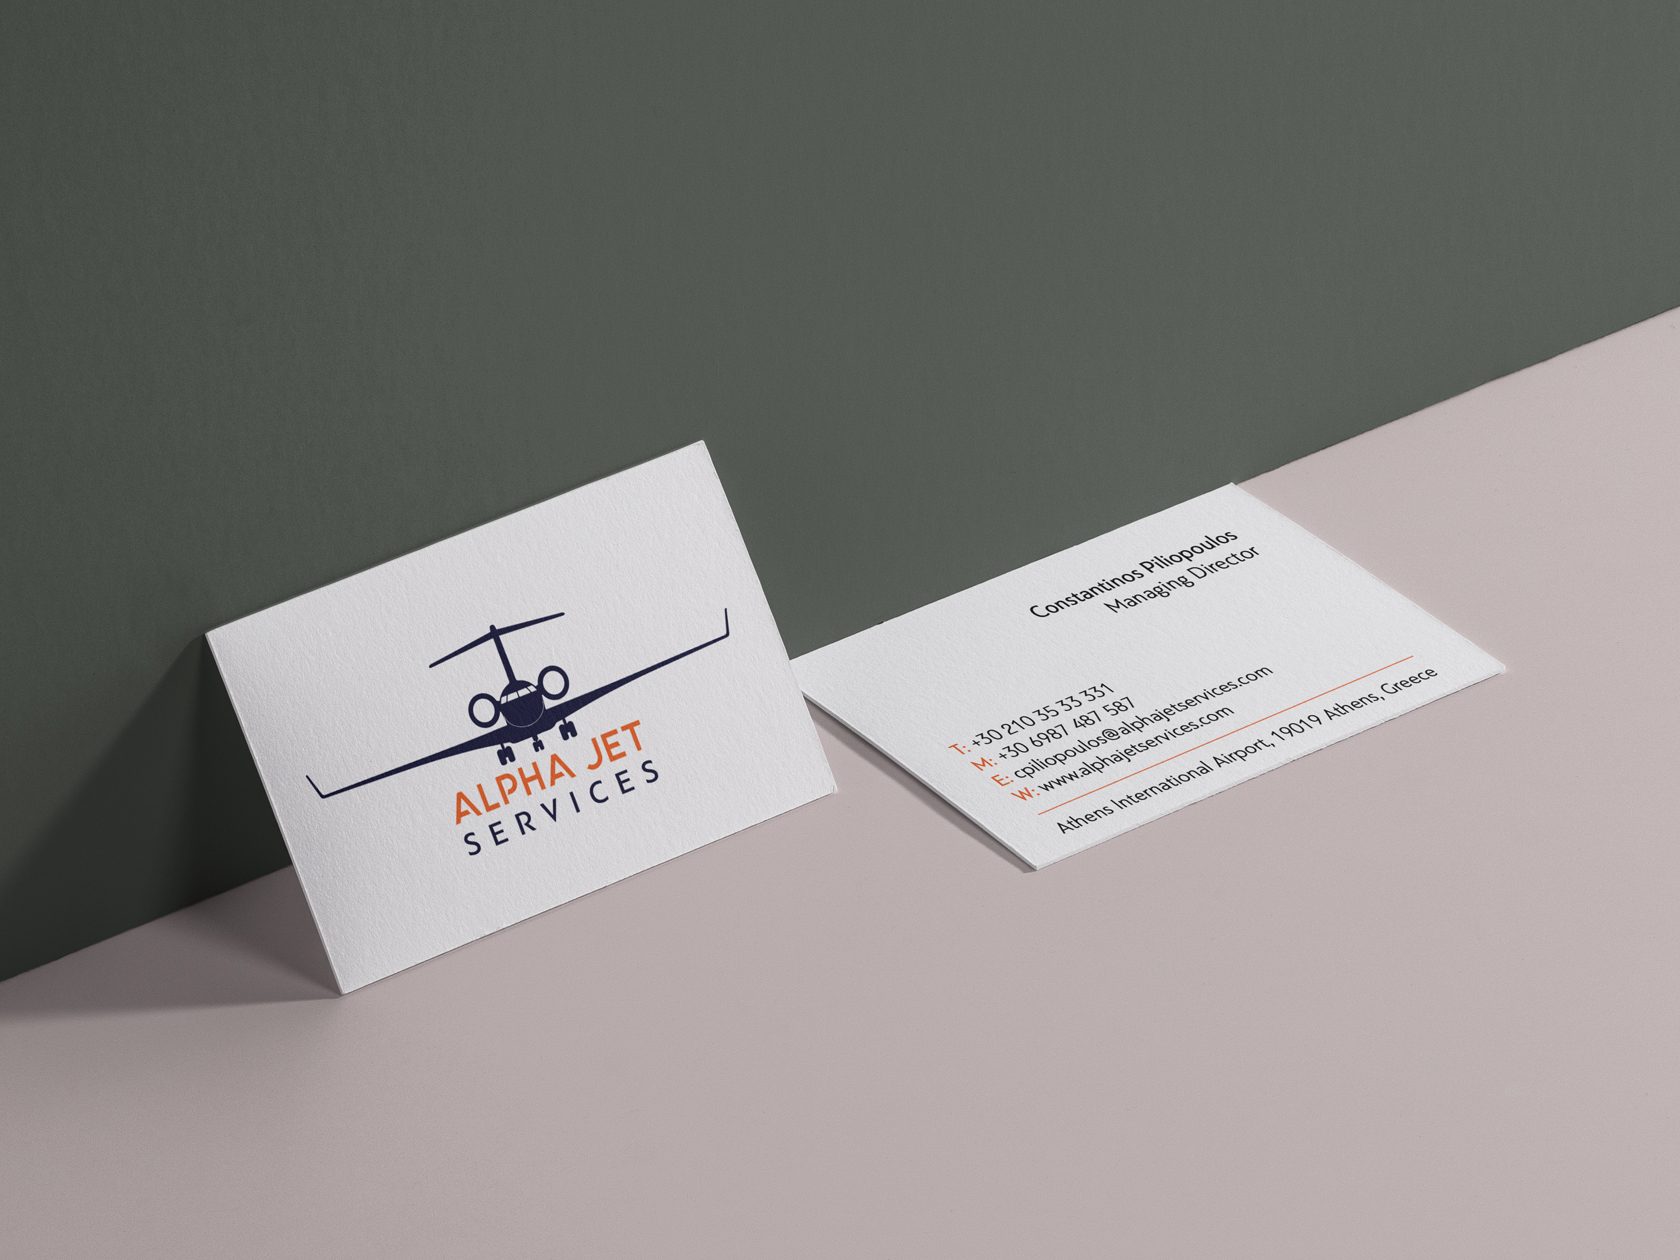 Alphajet Services embossed cards